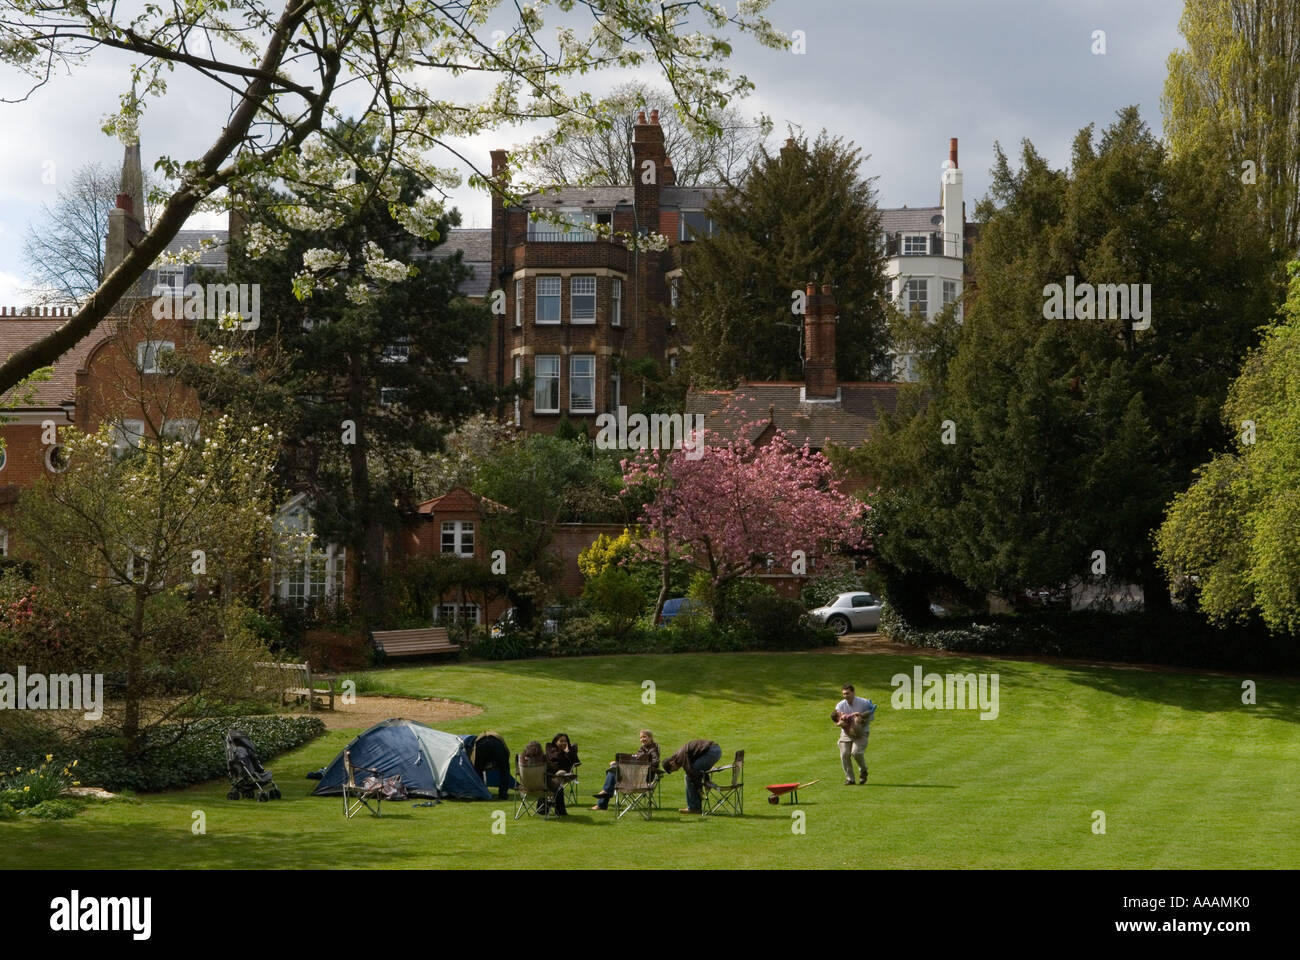 Green Space Children Houses Stock Photos Amp Green Space Children Houses Stock Images Alamy